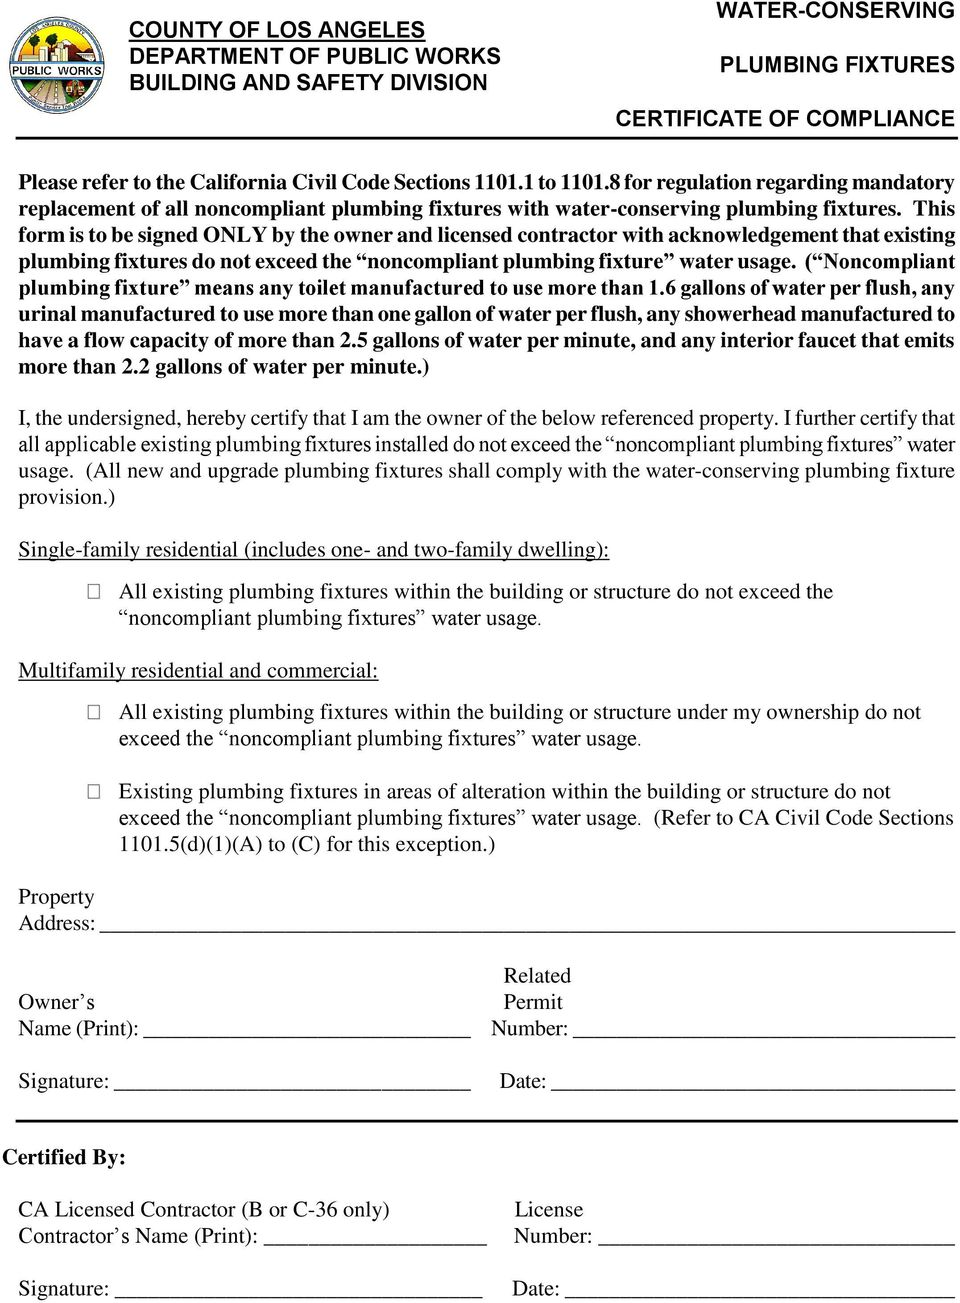 This form is to be signed ONLY by the owner and licensed contractor with acknowledgement that existing plumbing fixtures do not exceed the noncompliant plumbing fixture water usage.